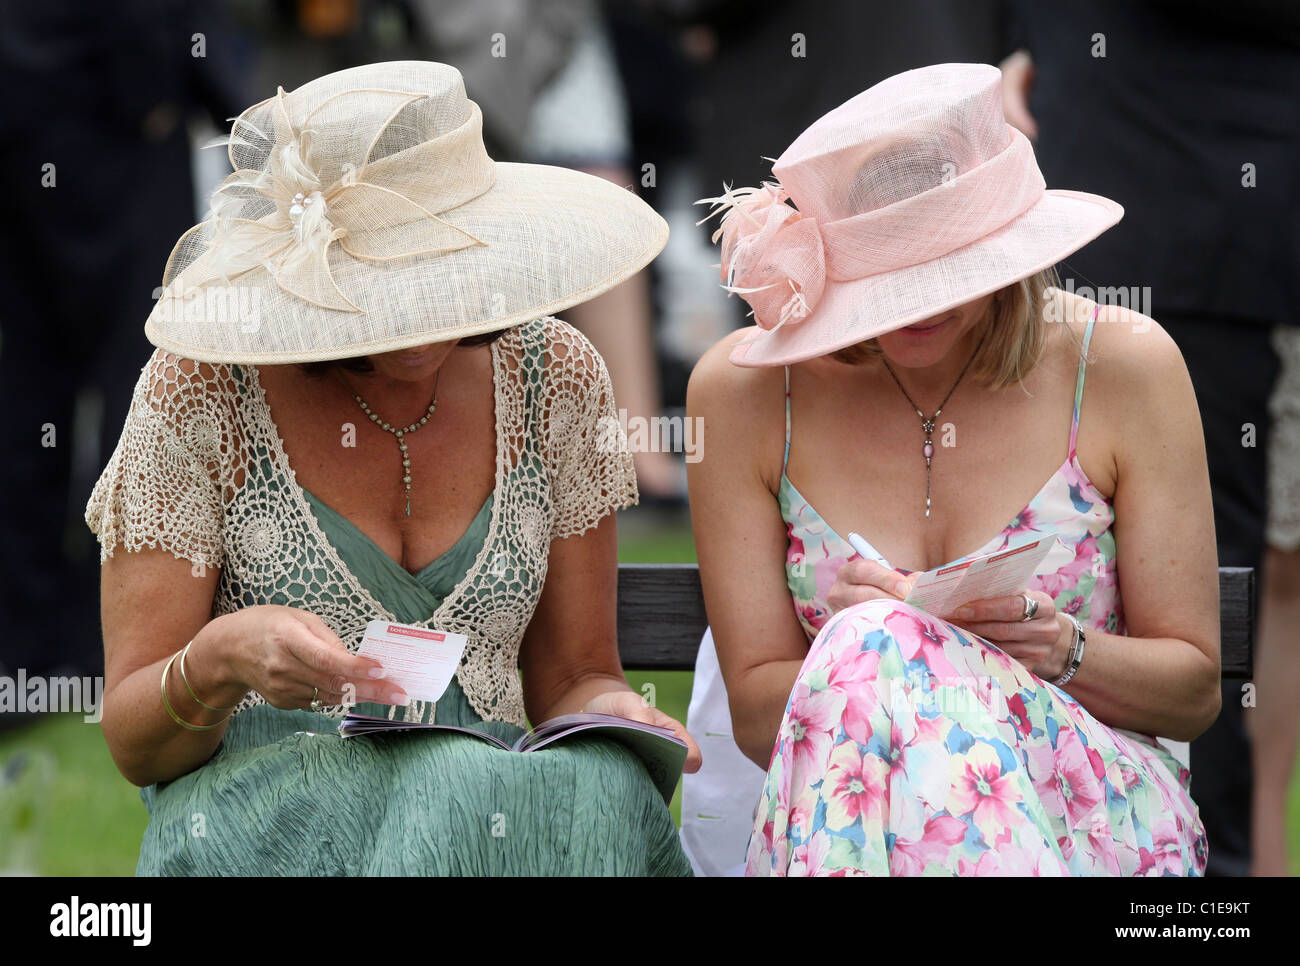 Women with hats and betting slips at a horse race, Epsom, United Kingdom - Stock Image